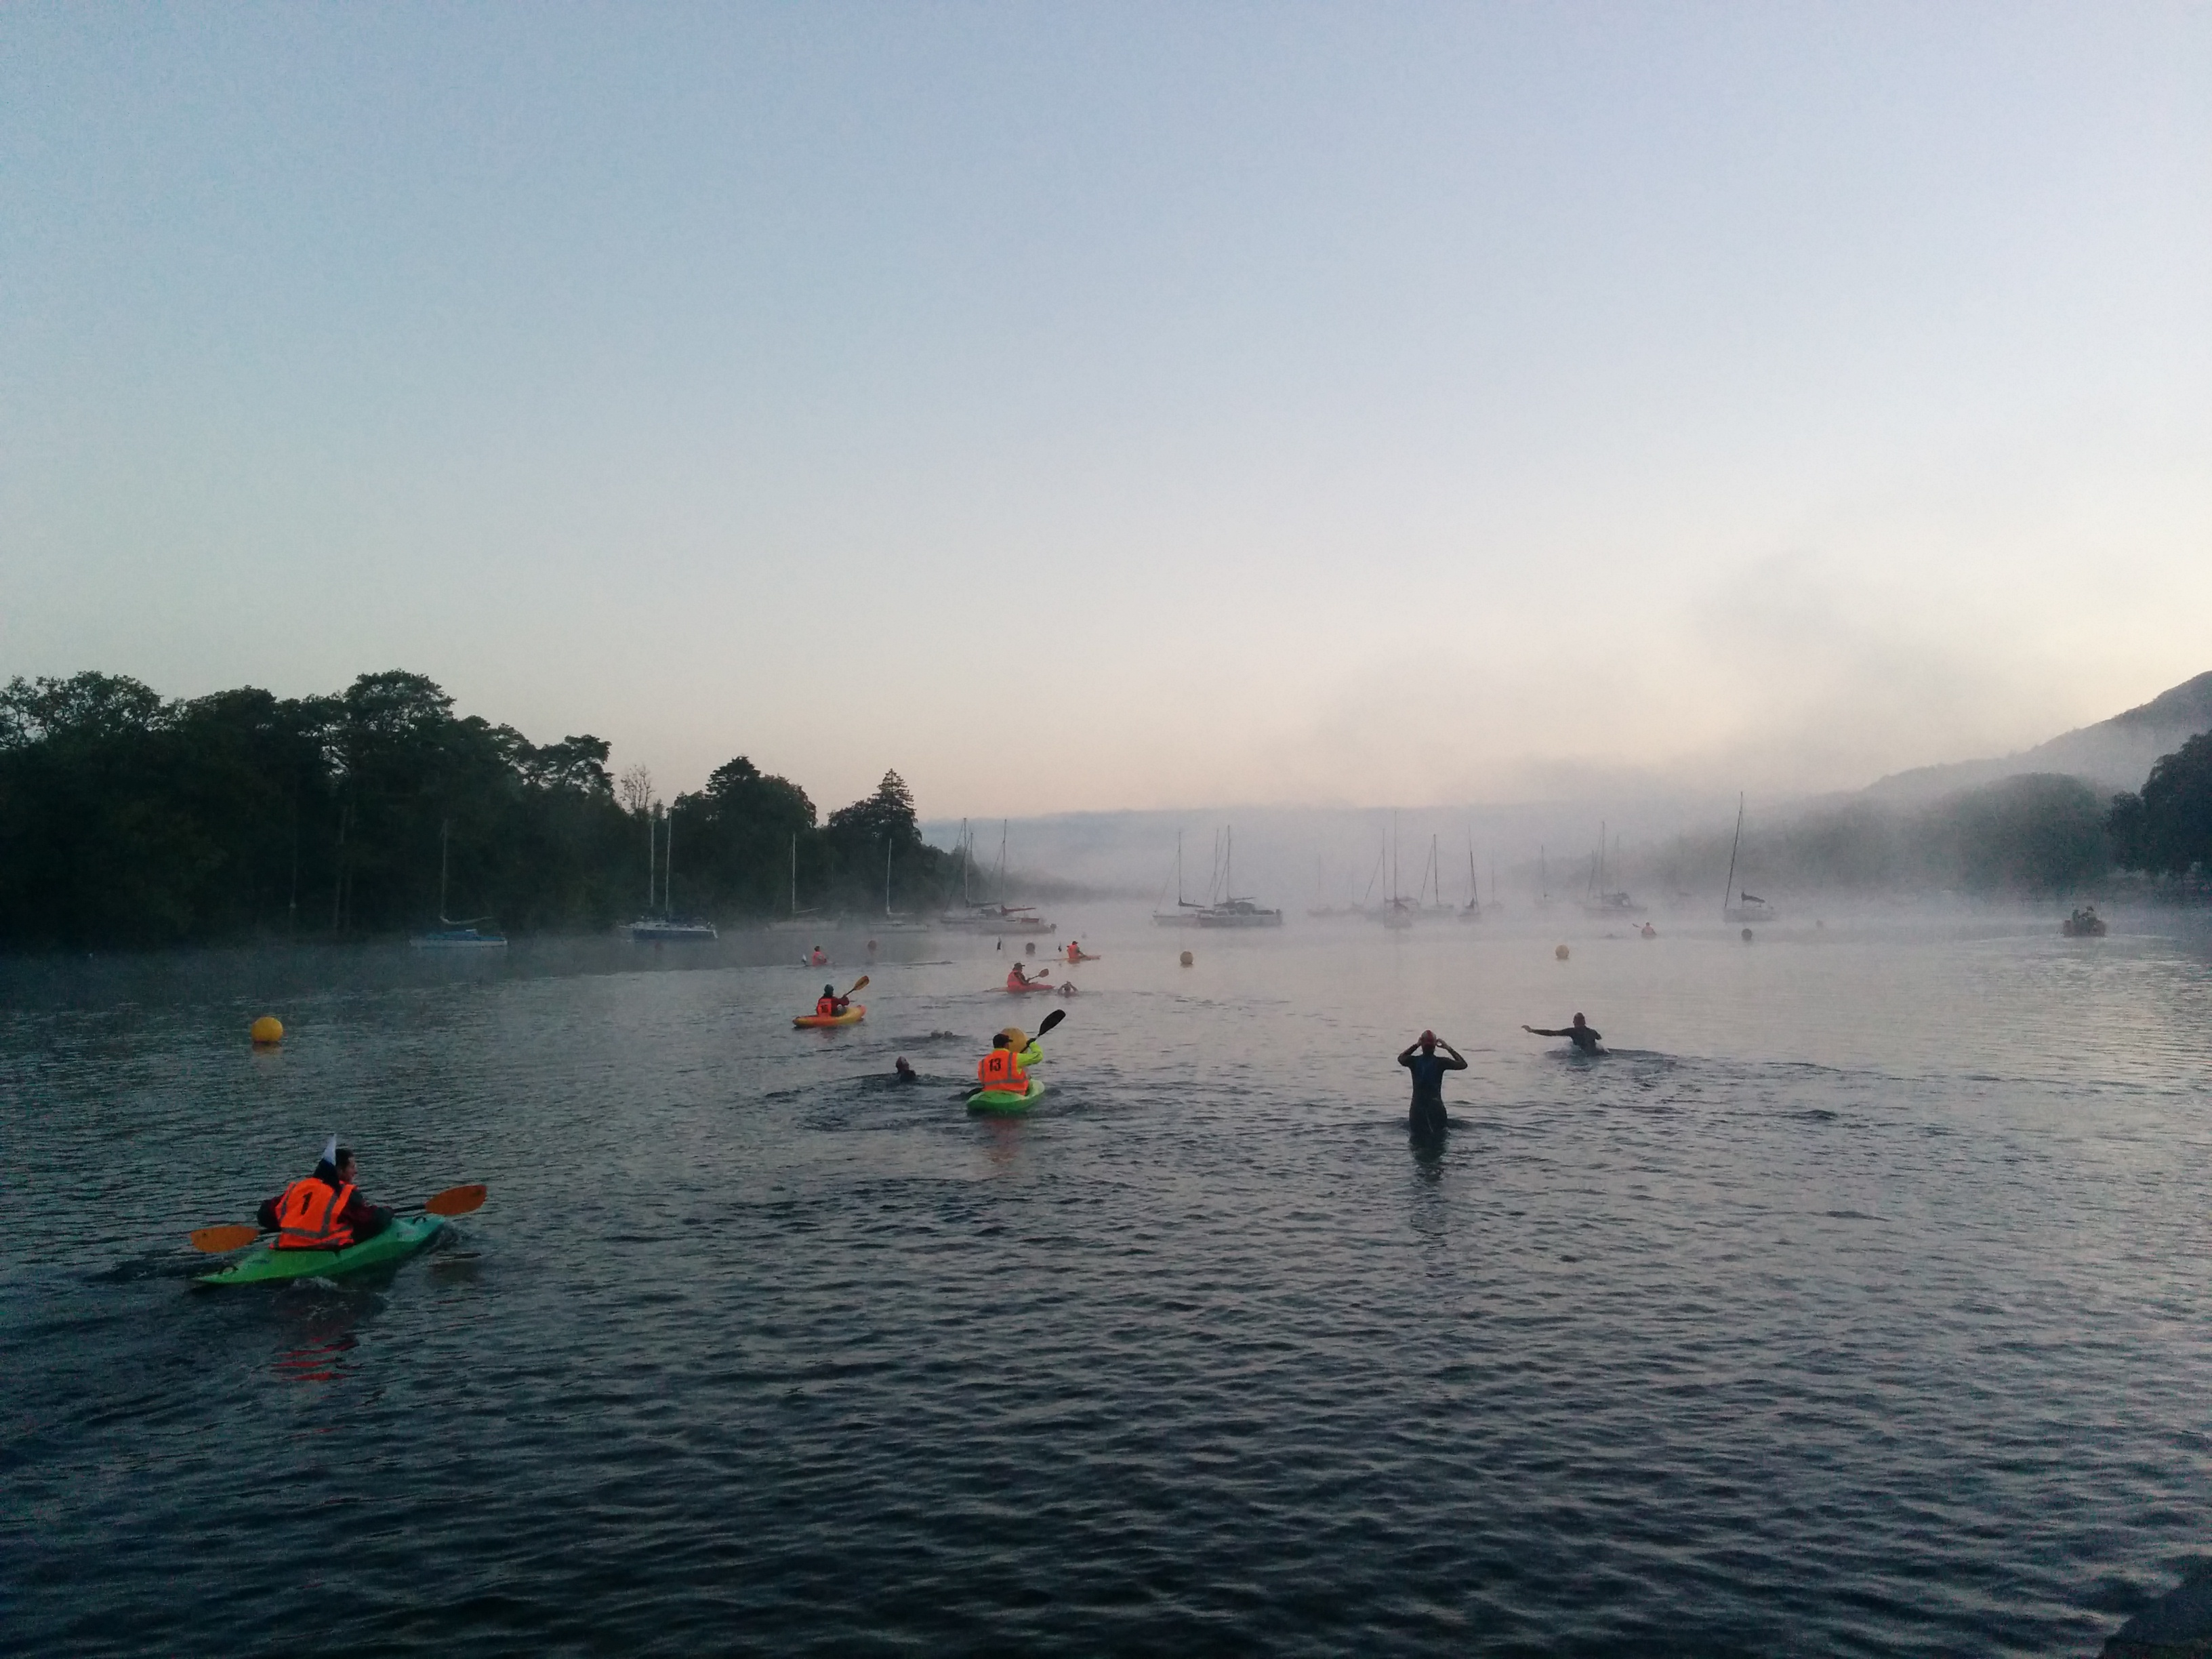 Starting the Windermere One Way swim